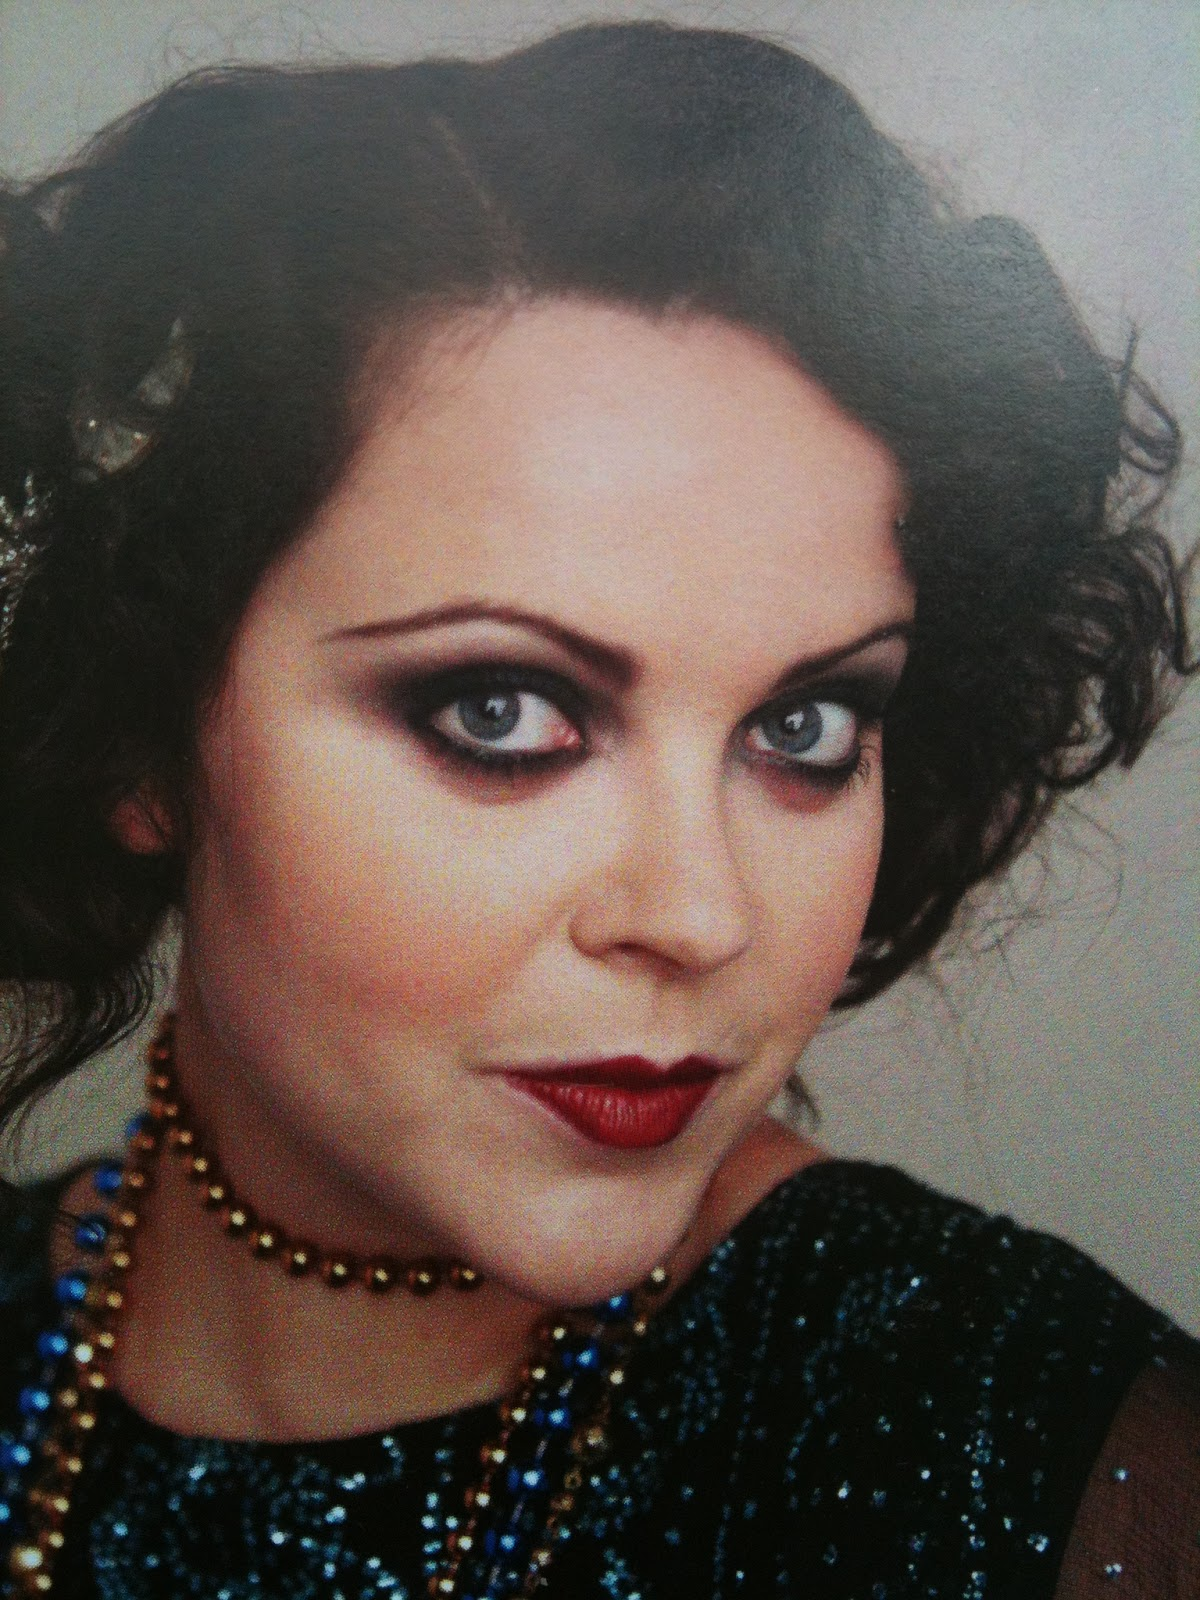 ... related roaring 20s makeup styles 30s makeup styles 20s hair